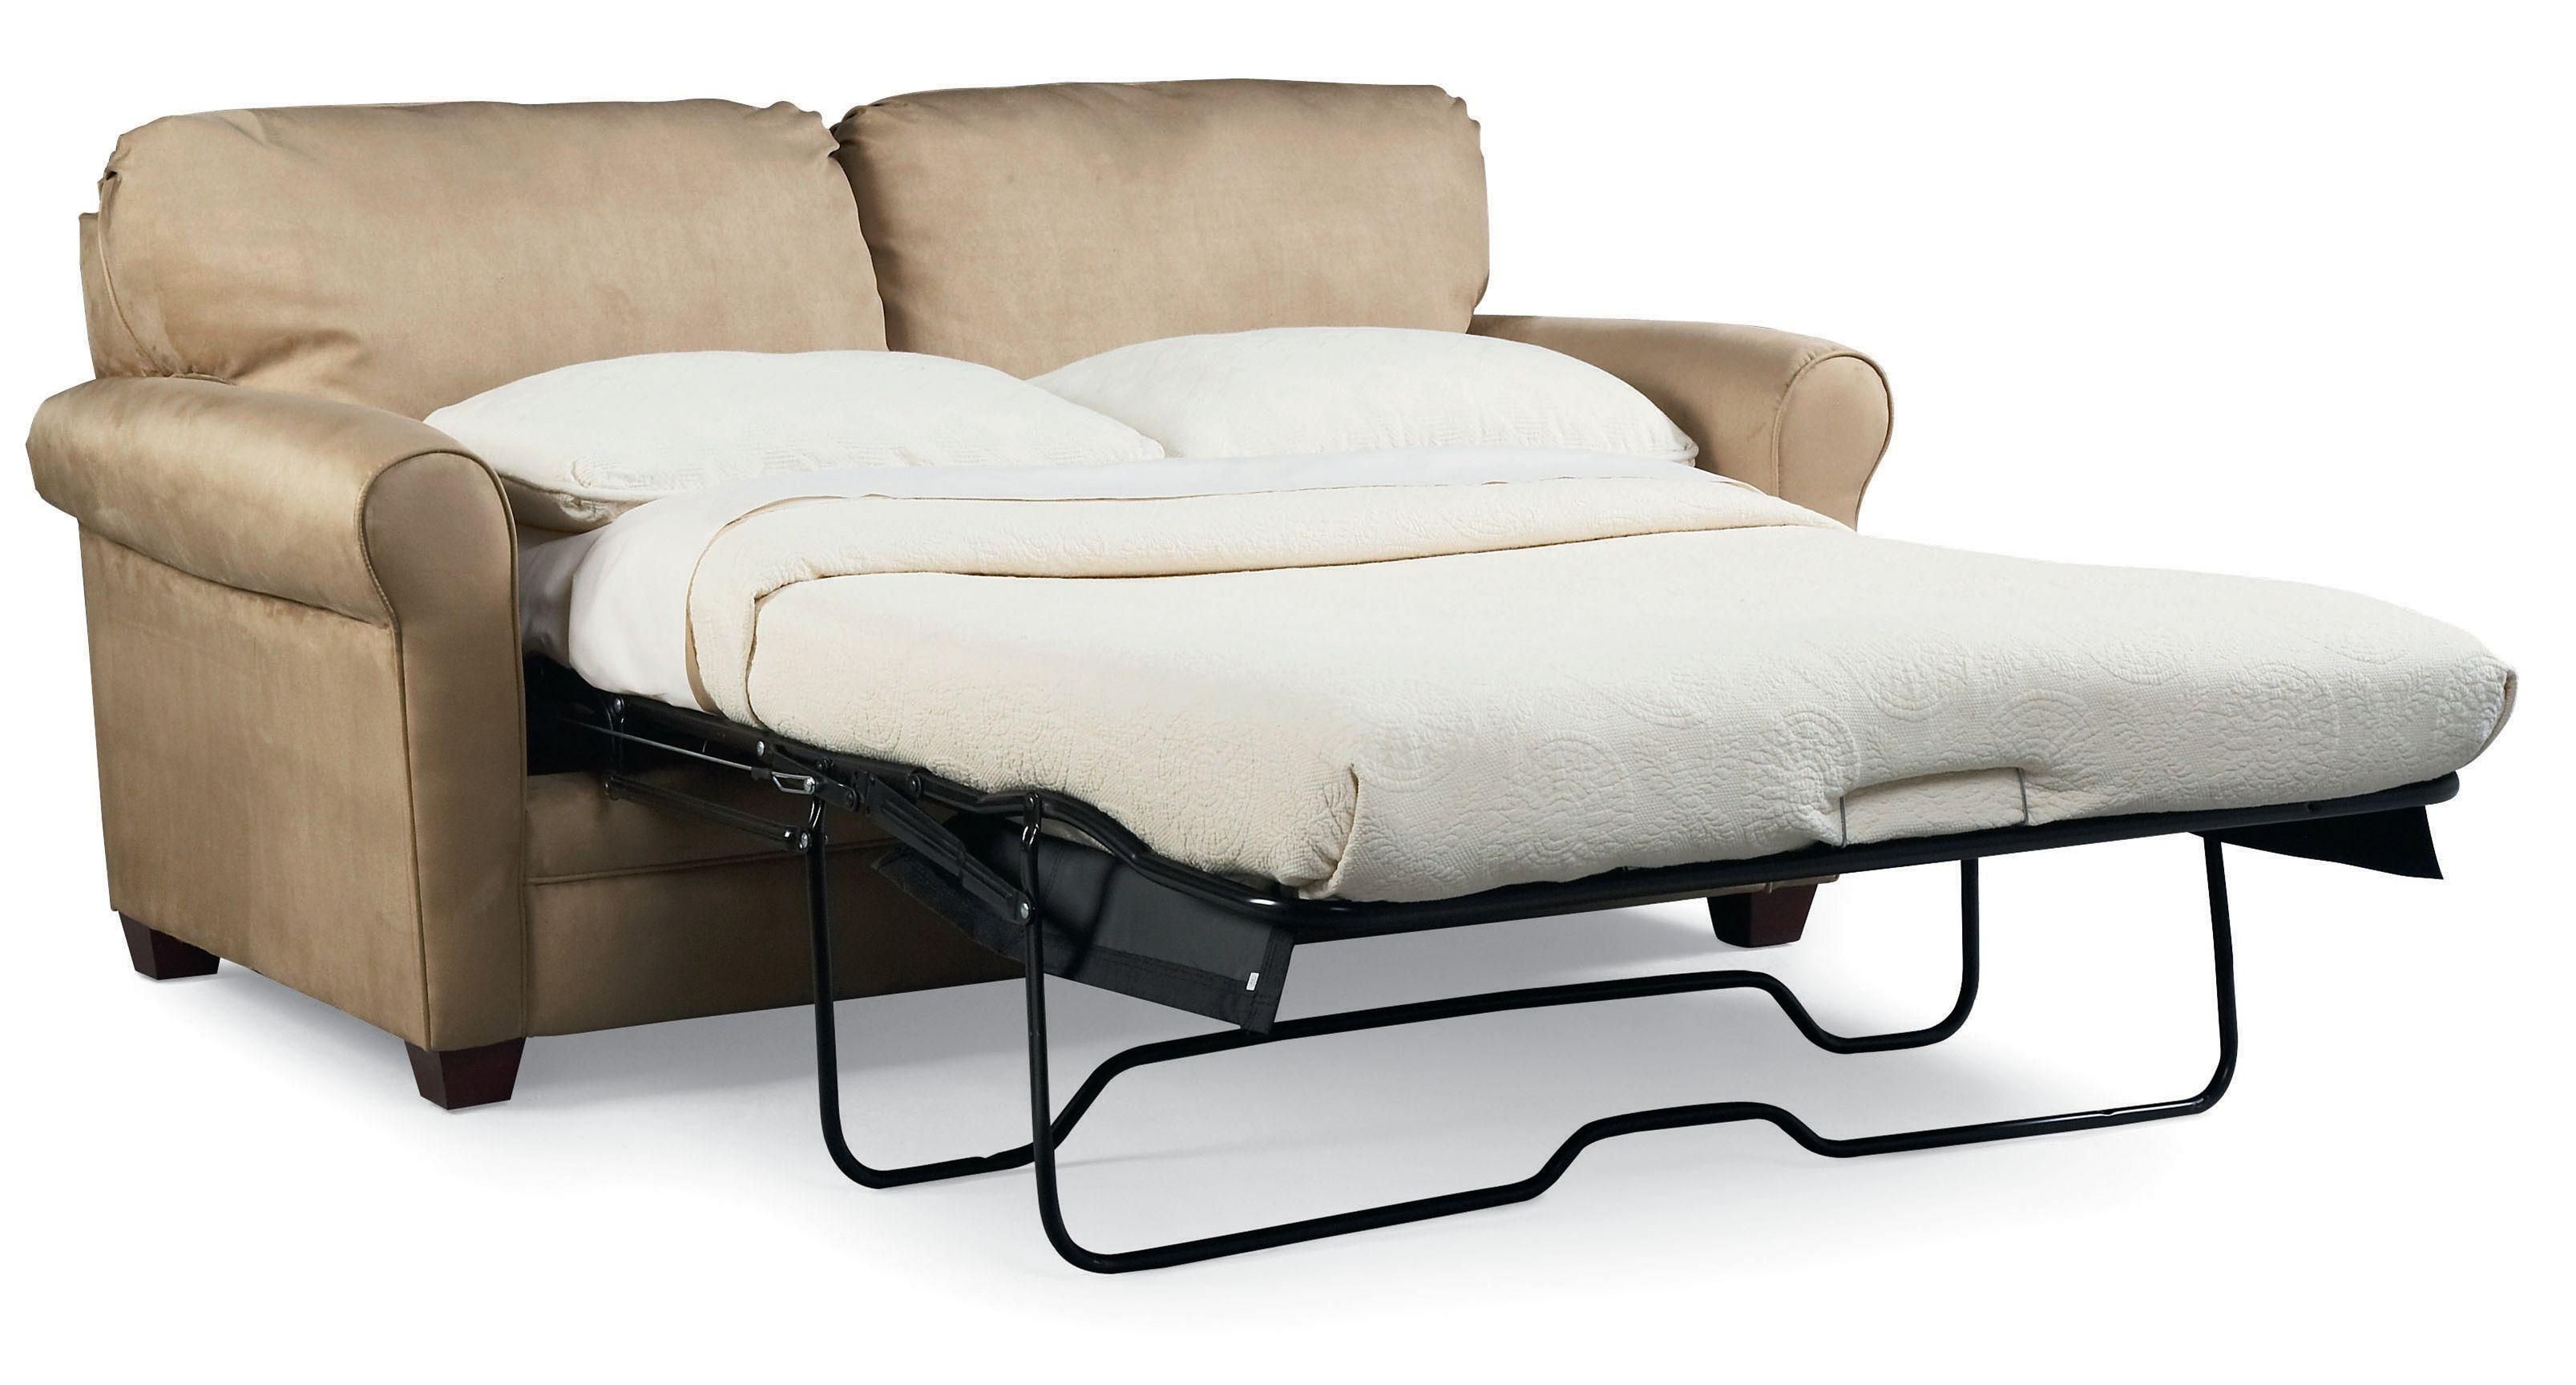 Queen Size Sofa Bed Frame | Tehranmix Decoration In Full Size Sofa Beds (Image 10 of 20)